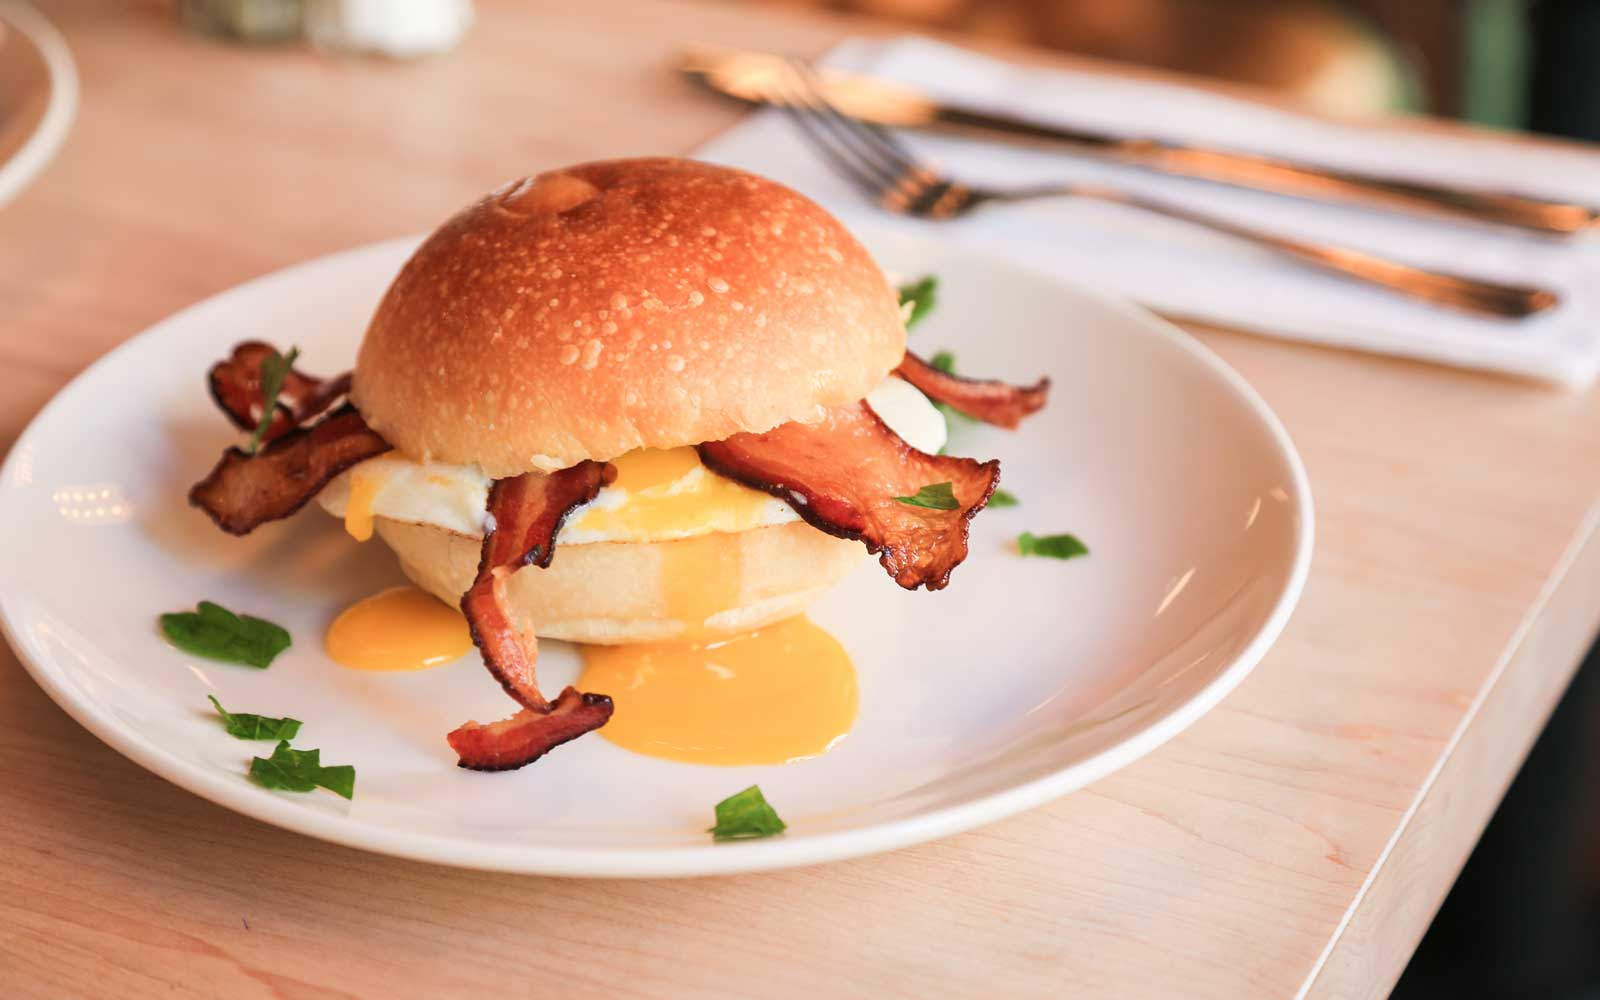 The Best Egg-obsessed Restaurants to Celebrate World Egg Day